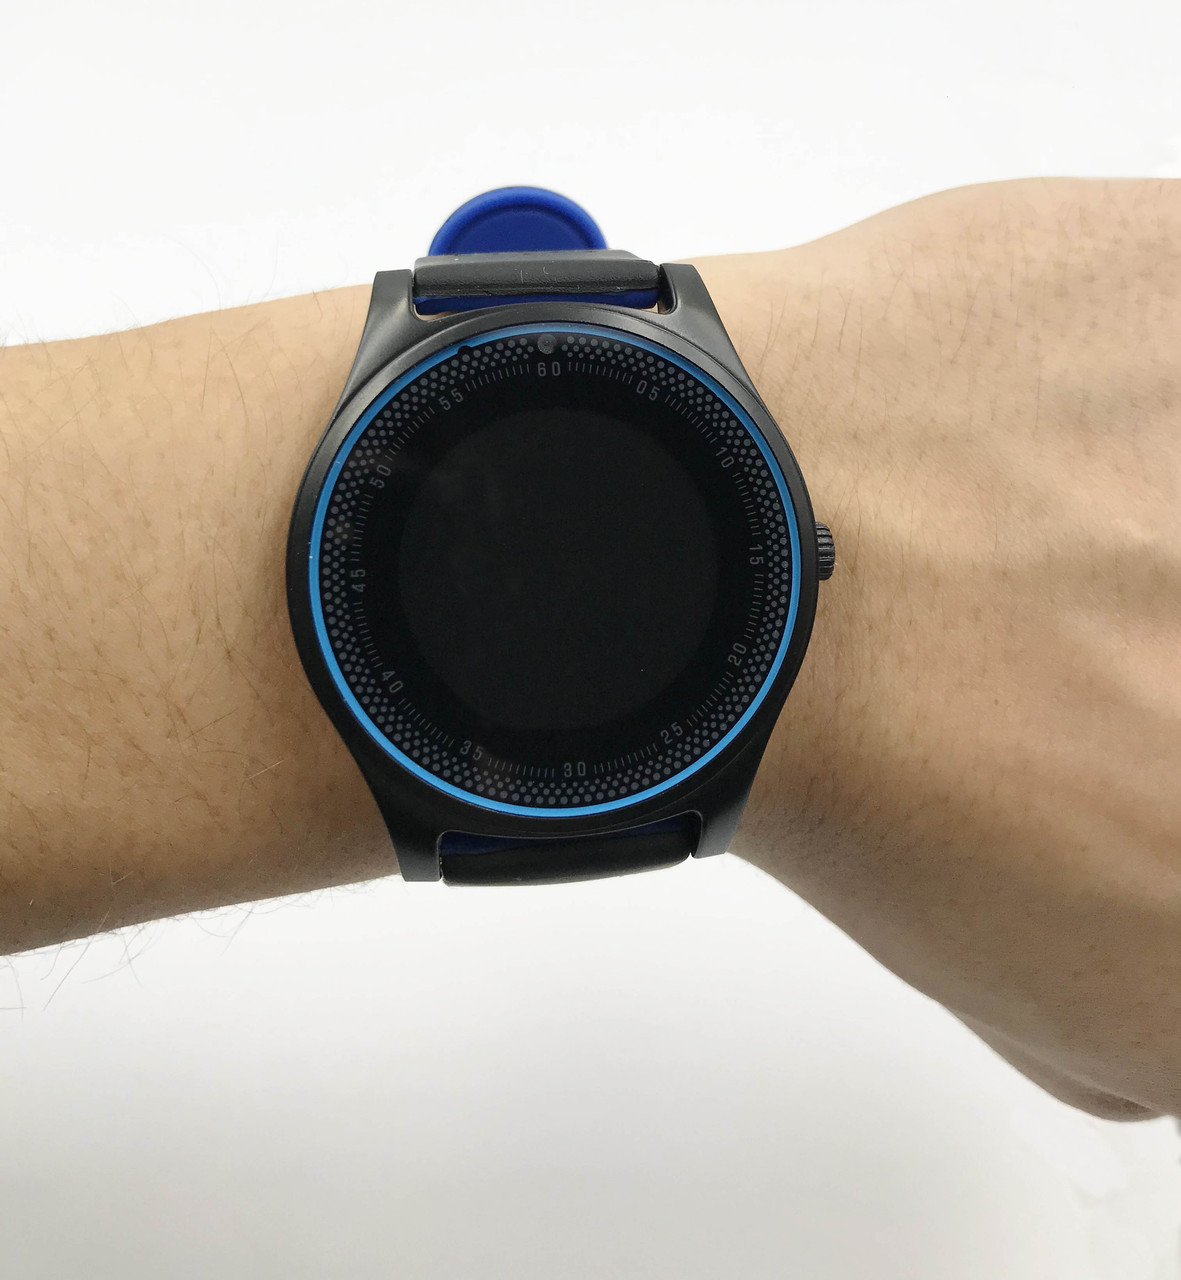 UWatch V9 Blue